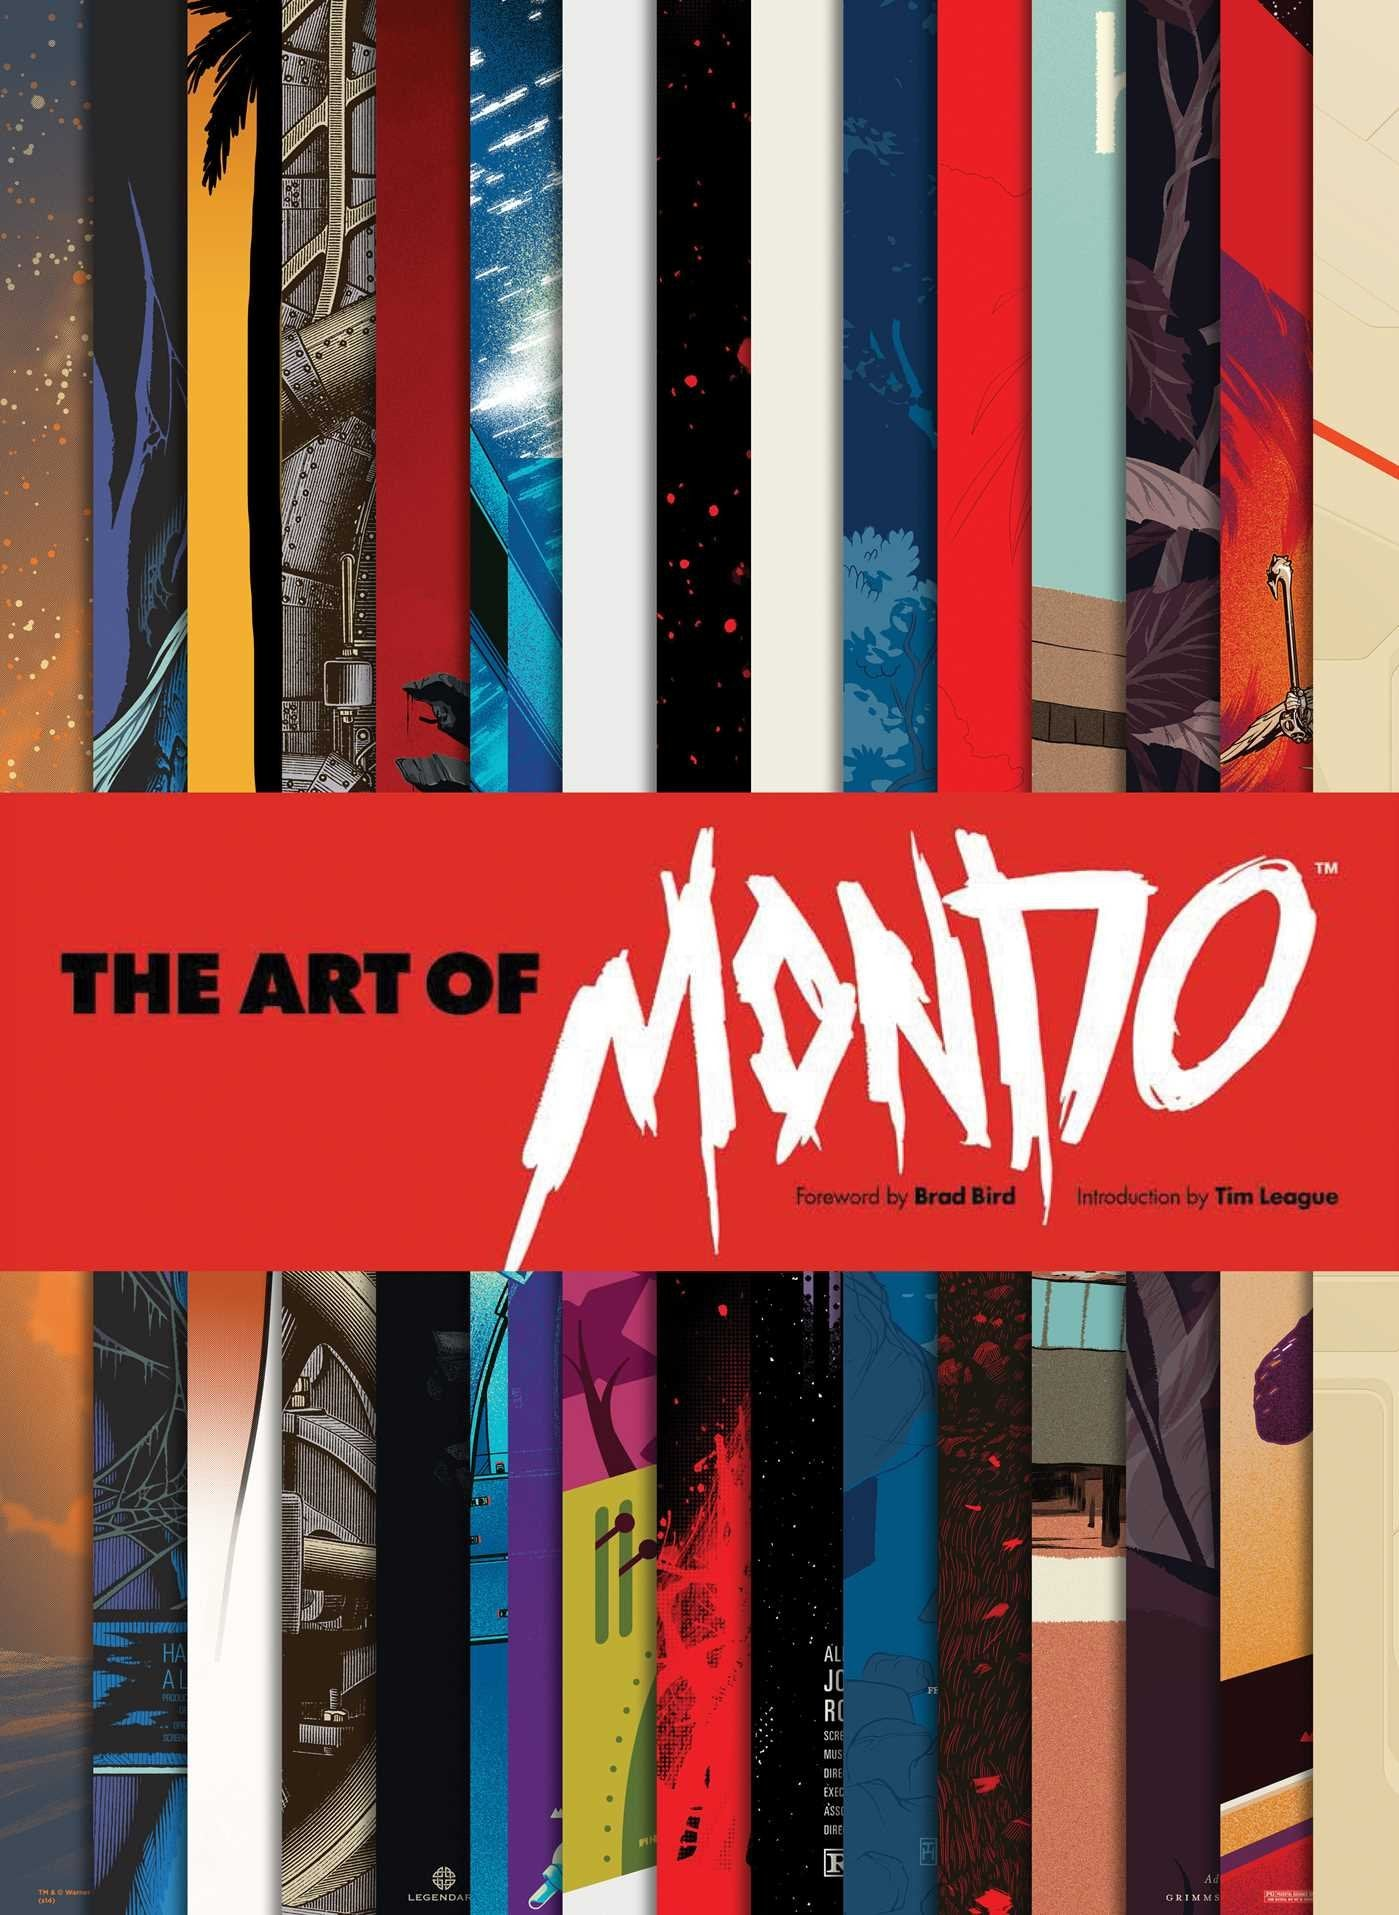 The Art of Mondo